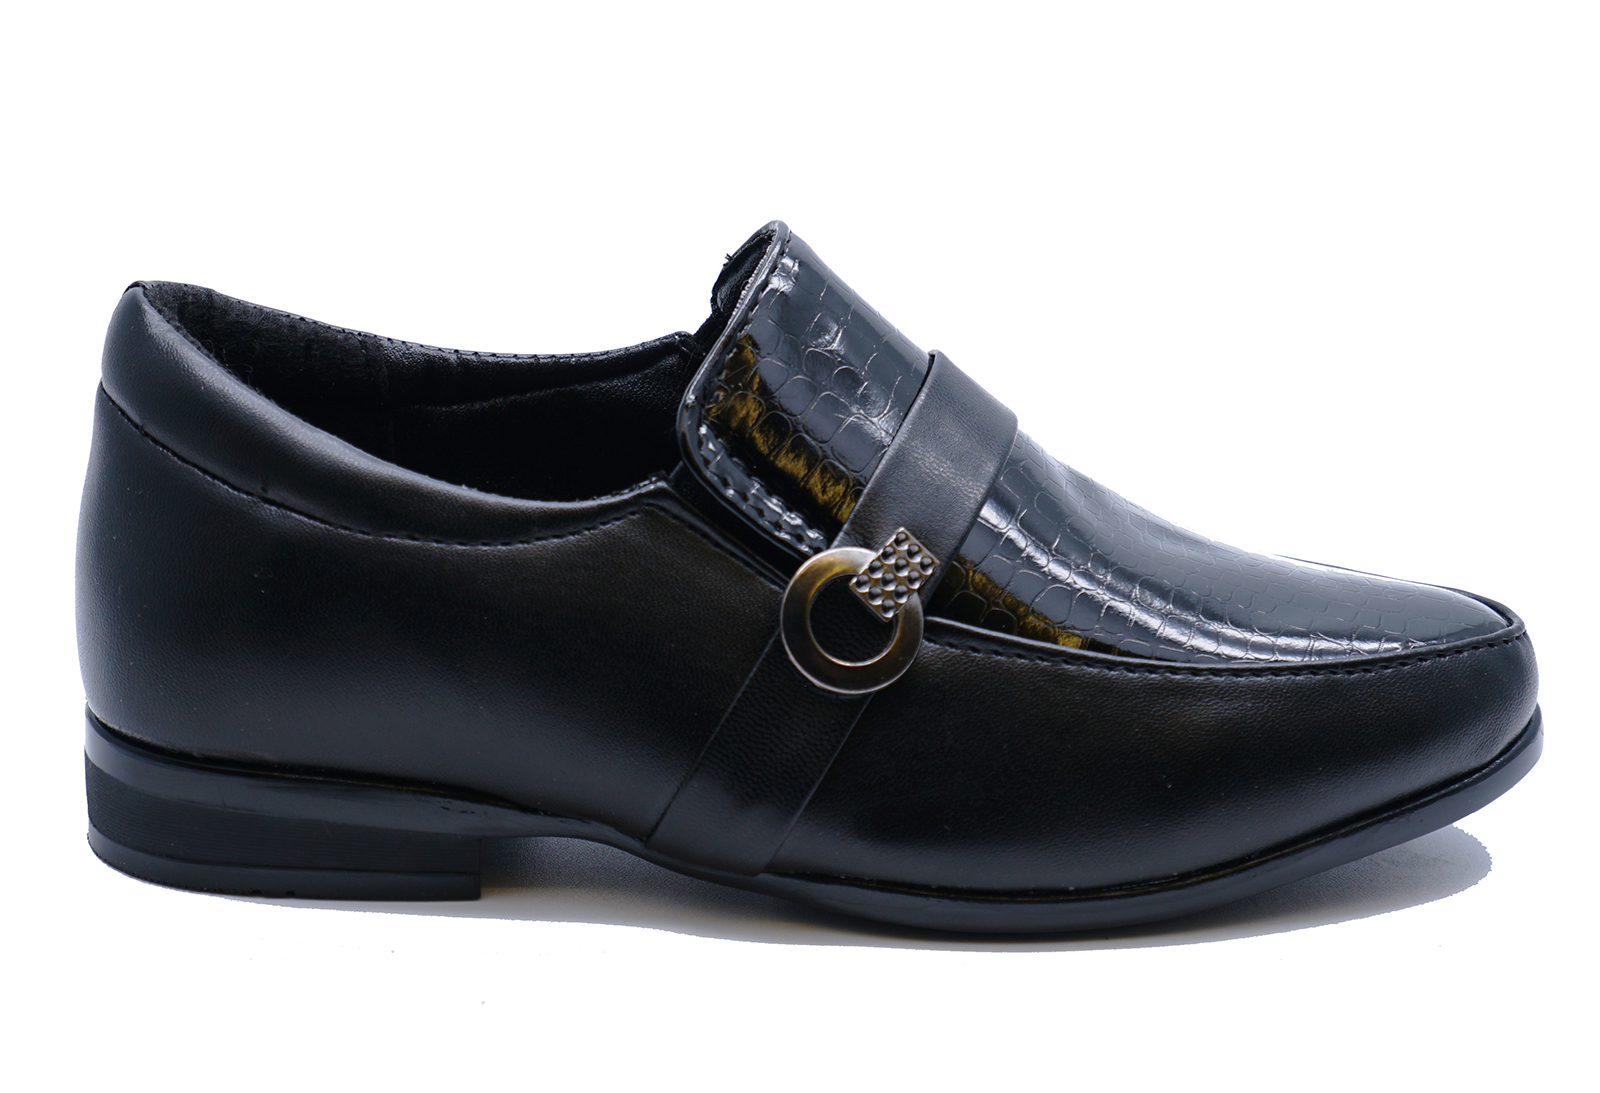 BOYS-KIDS-JUNIOR-BLACK-SCHOOL-SLIP-ON-SMART-WEDDING-LOAFERS-SHOES-SIZES-8-6 thumbnail 7